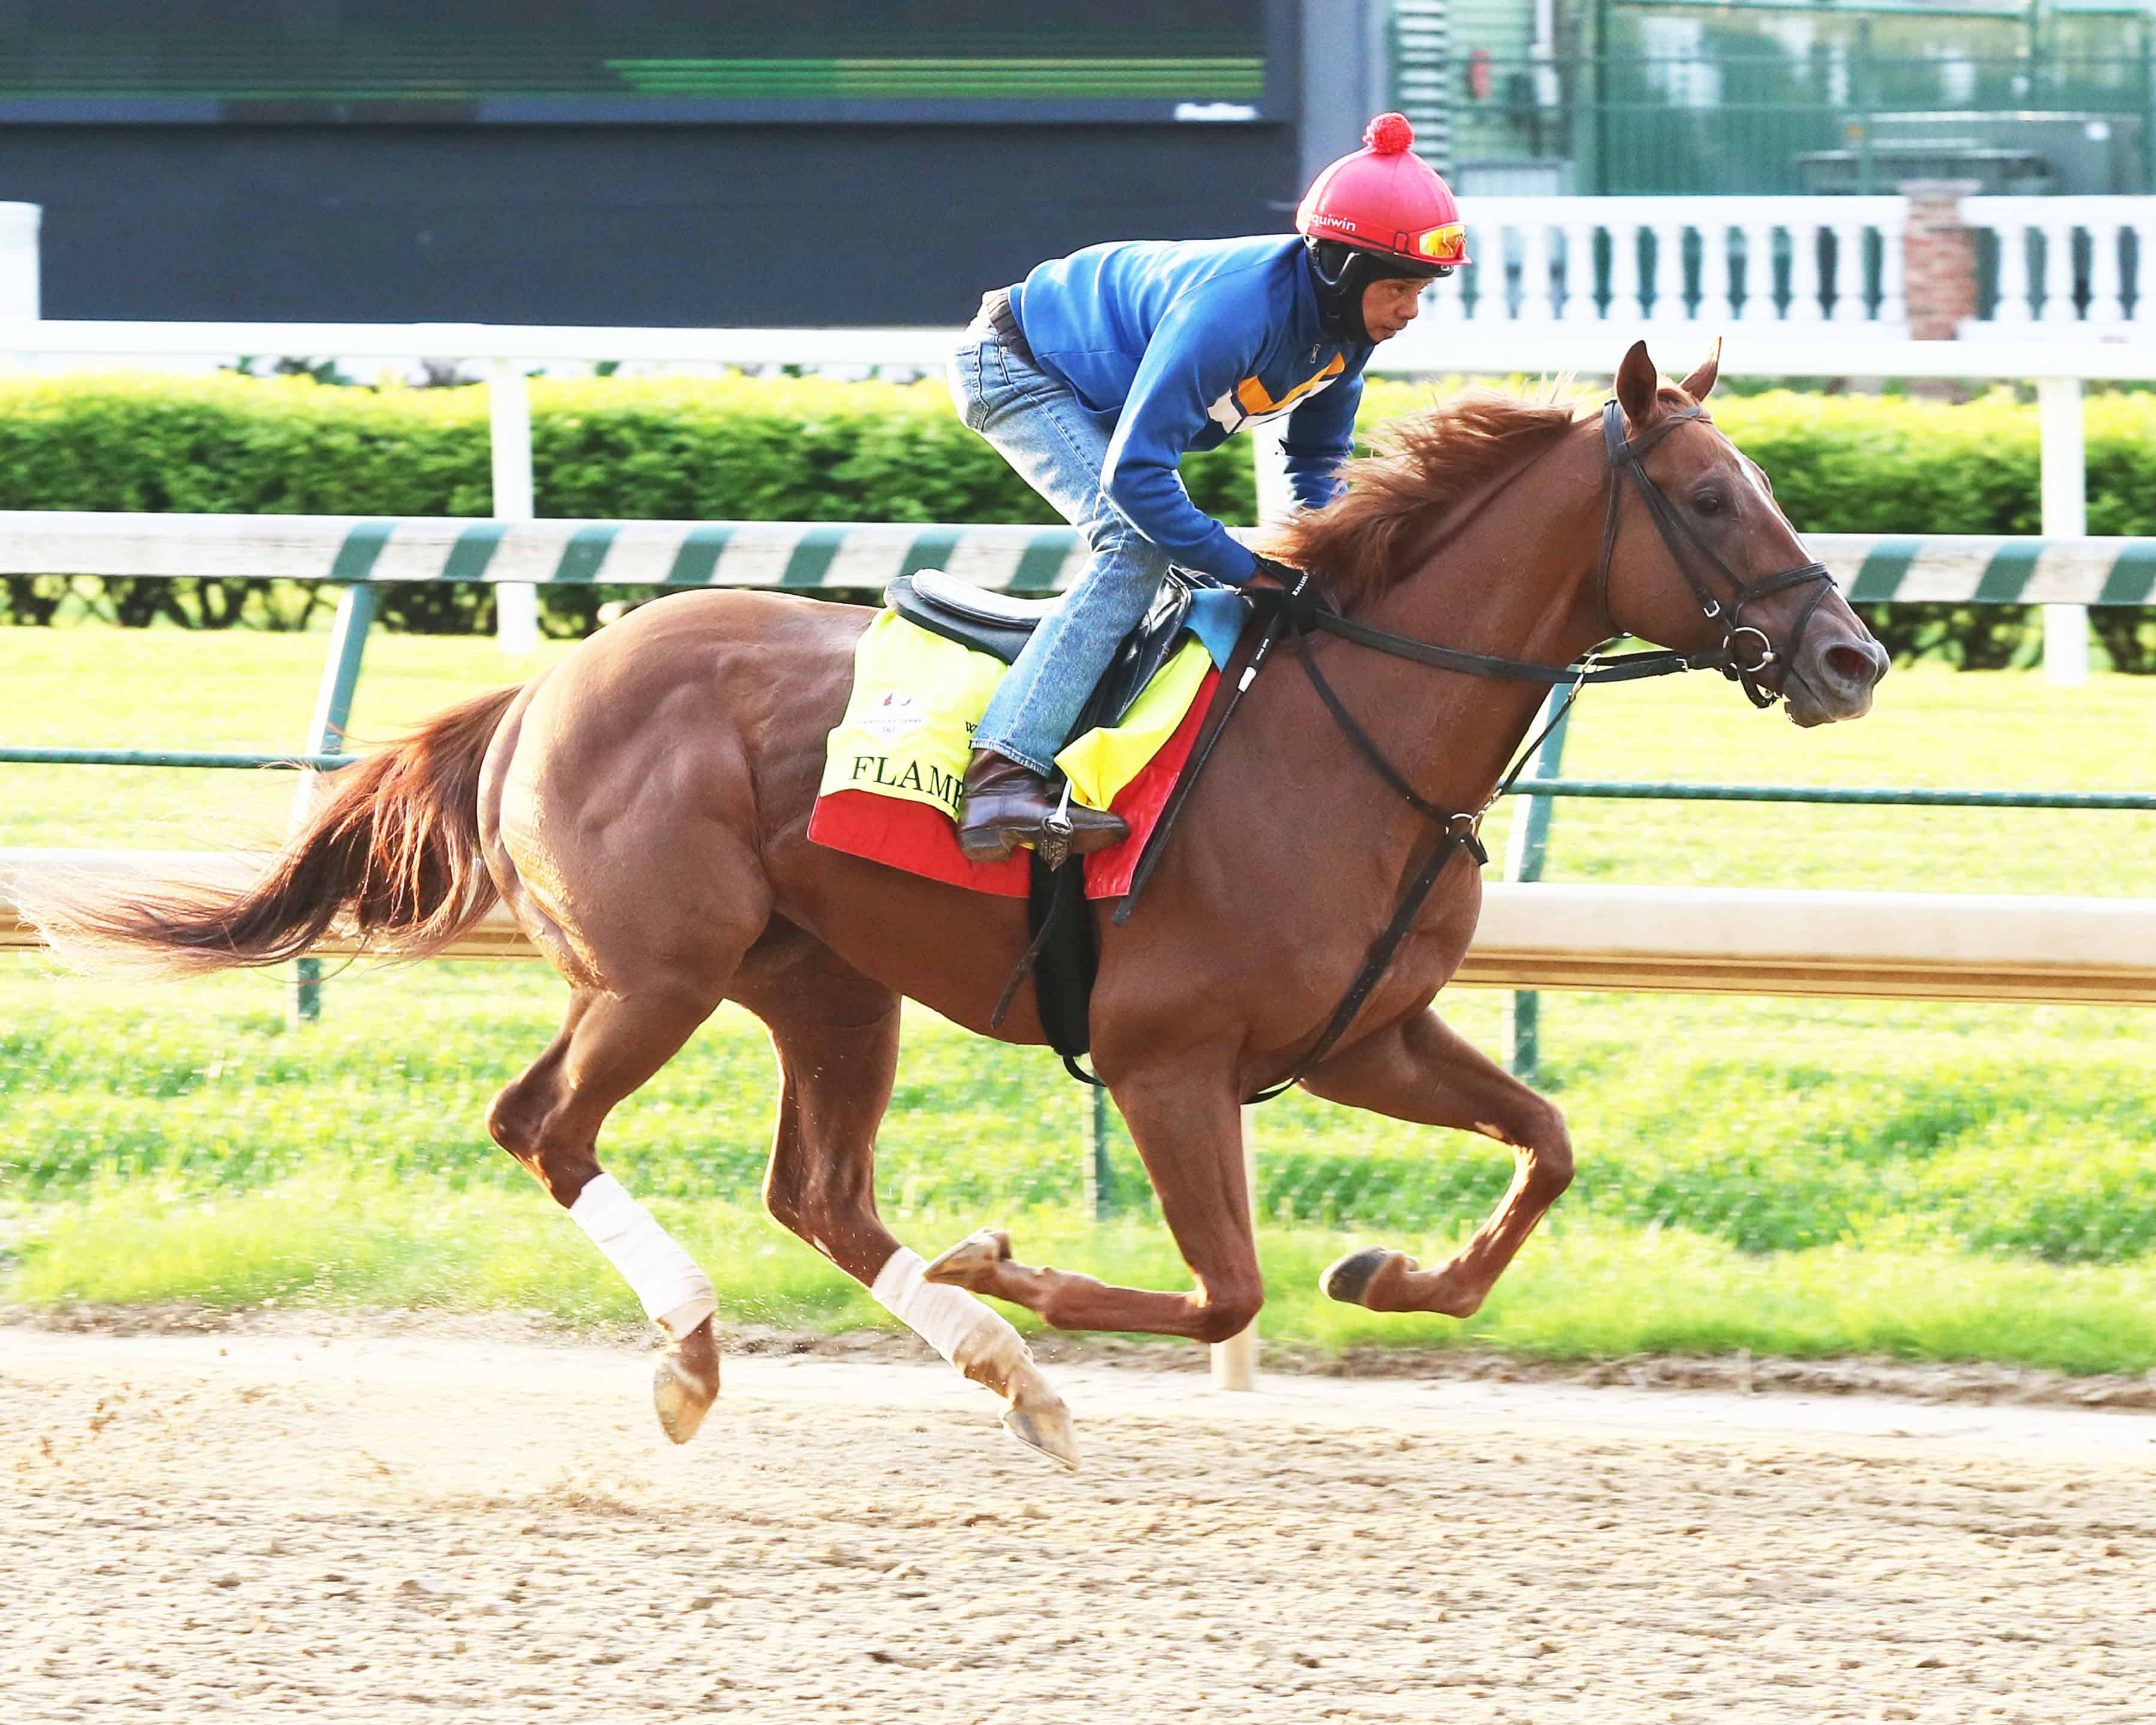 Kentucky Derby Victory for Flameaway Would Benefit Equine Research